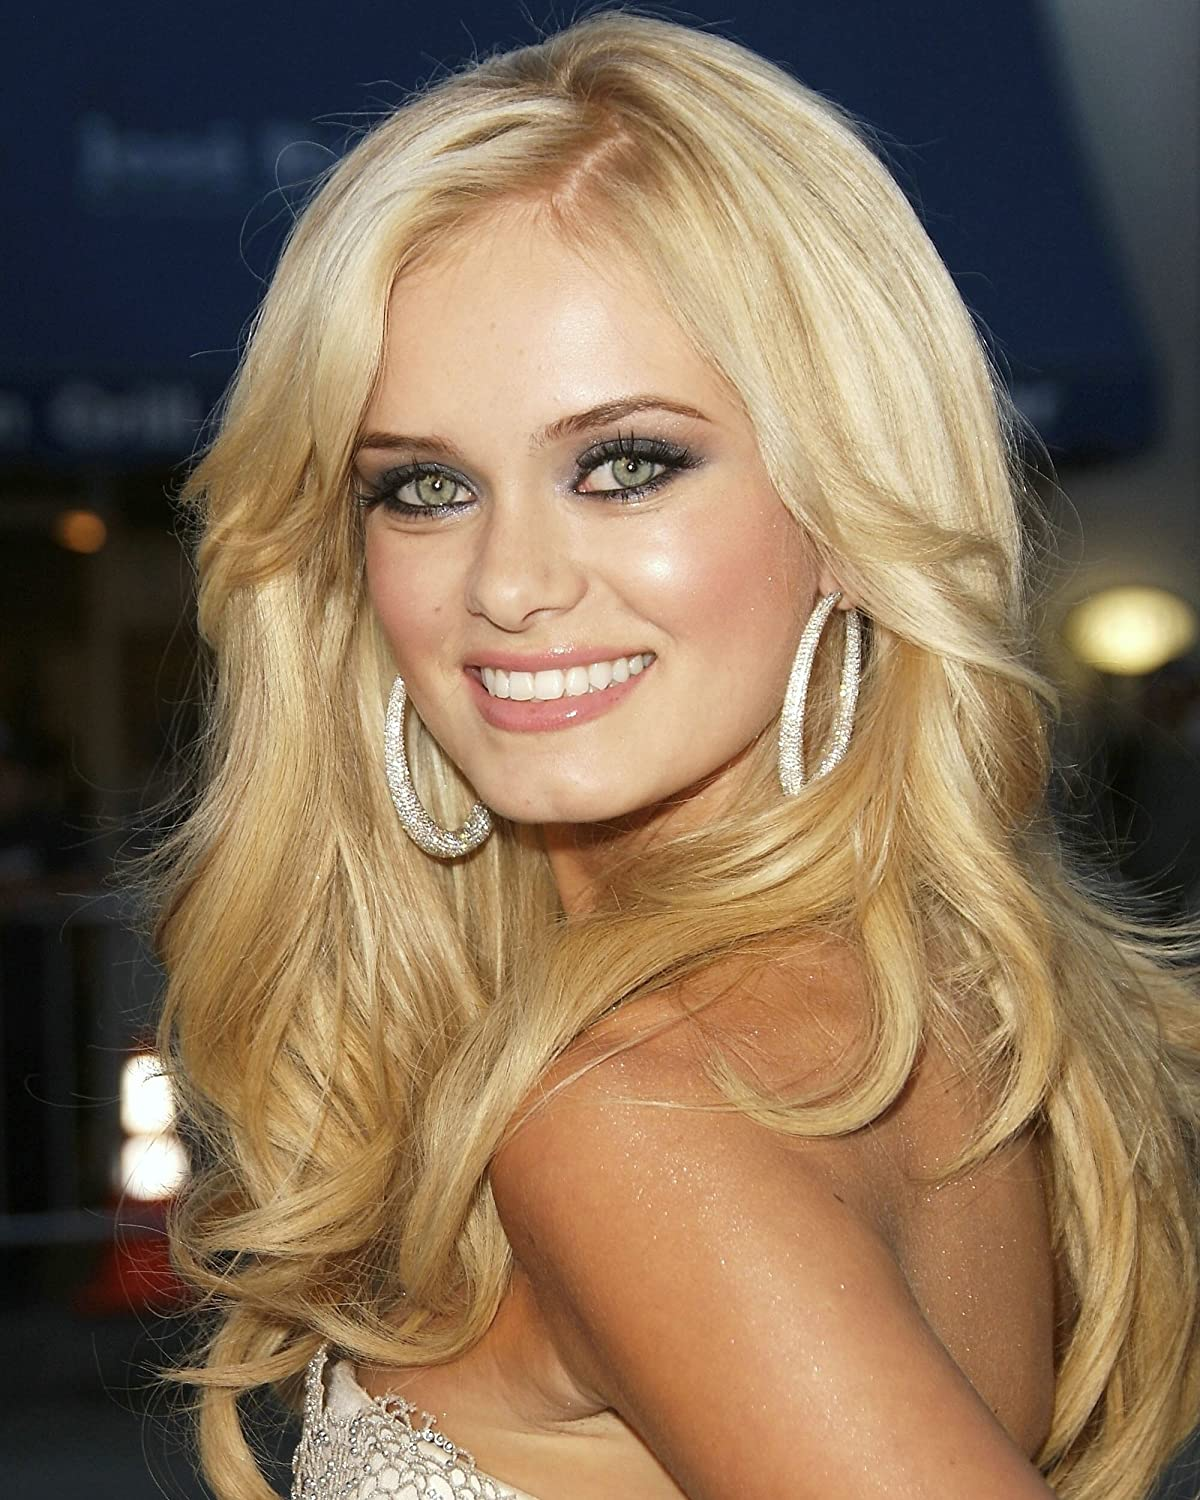 Watch Sara Paxton video